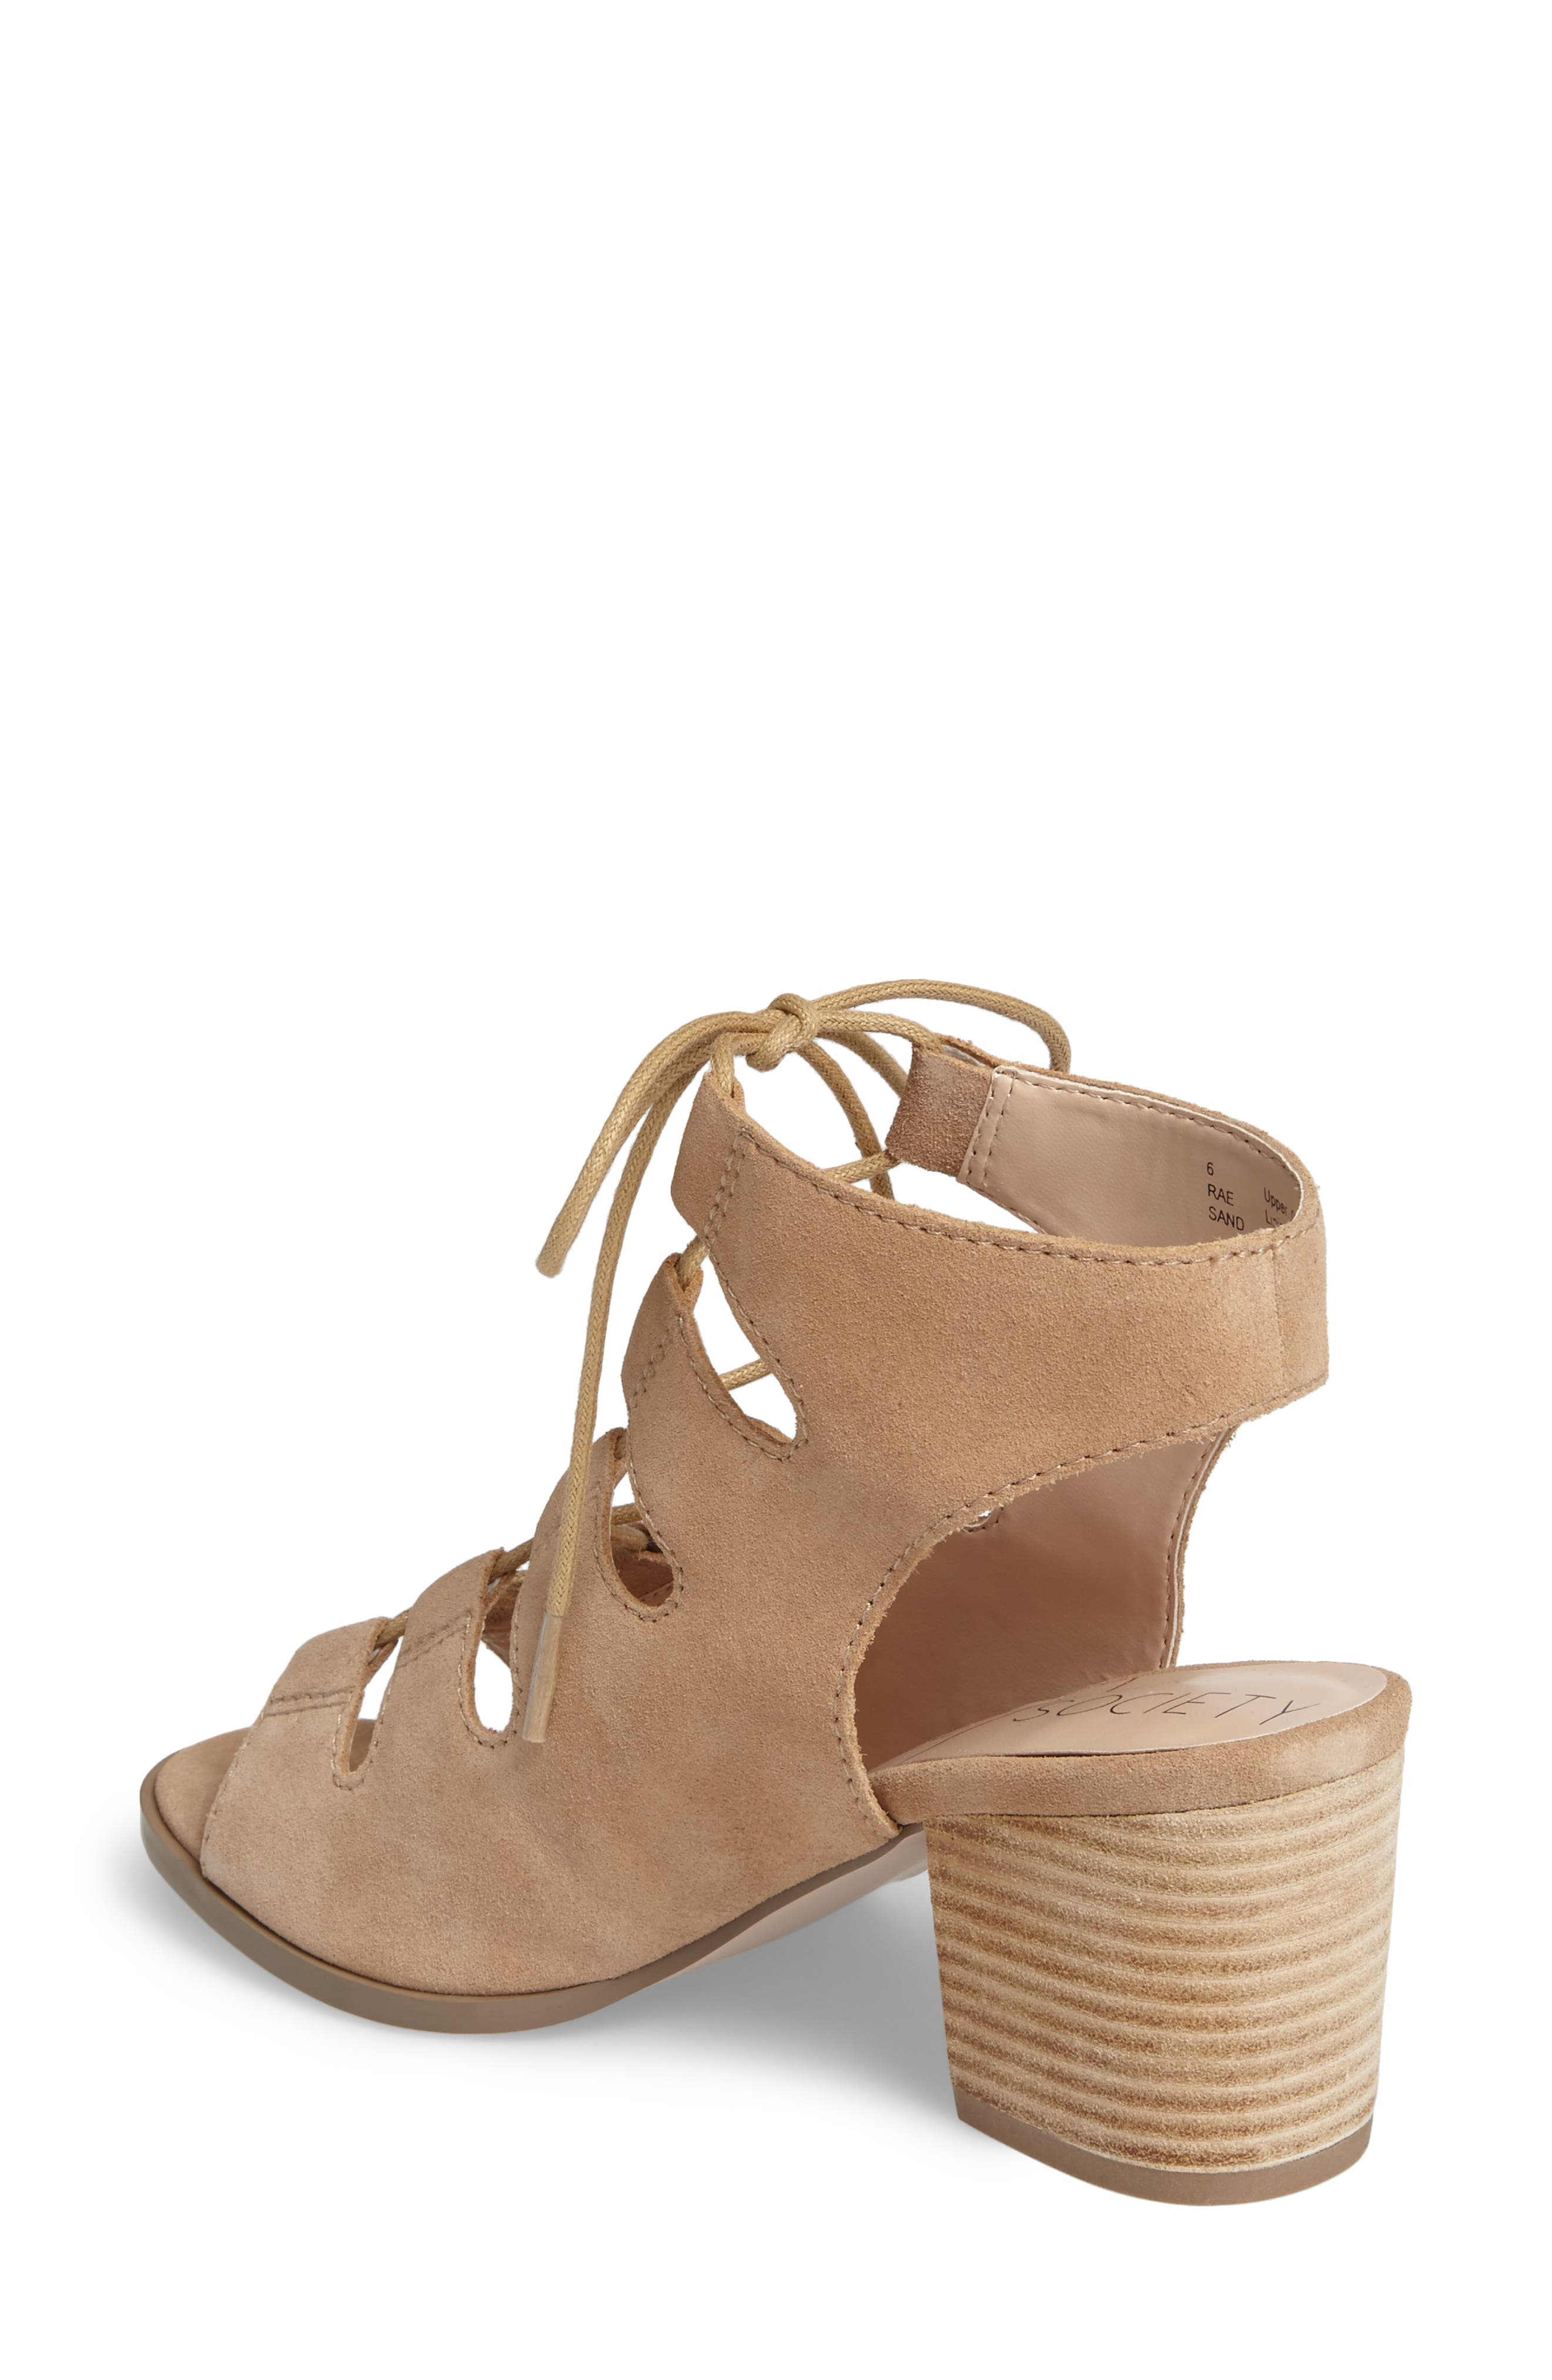 Alternate Image 2  - Sole Society Rae Block Heel Sandal (Women)